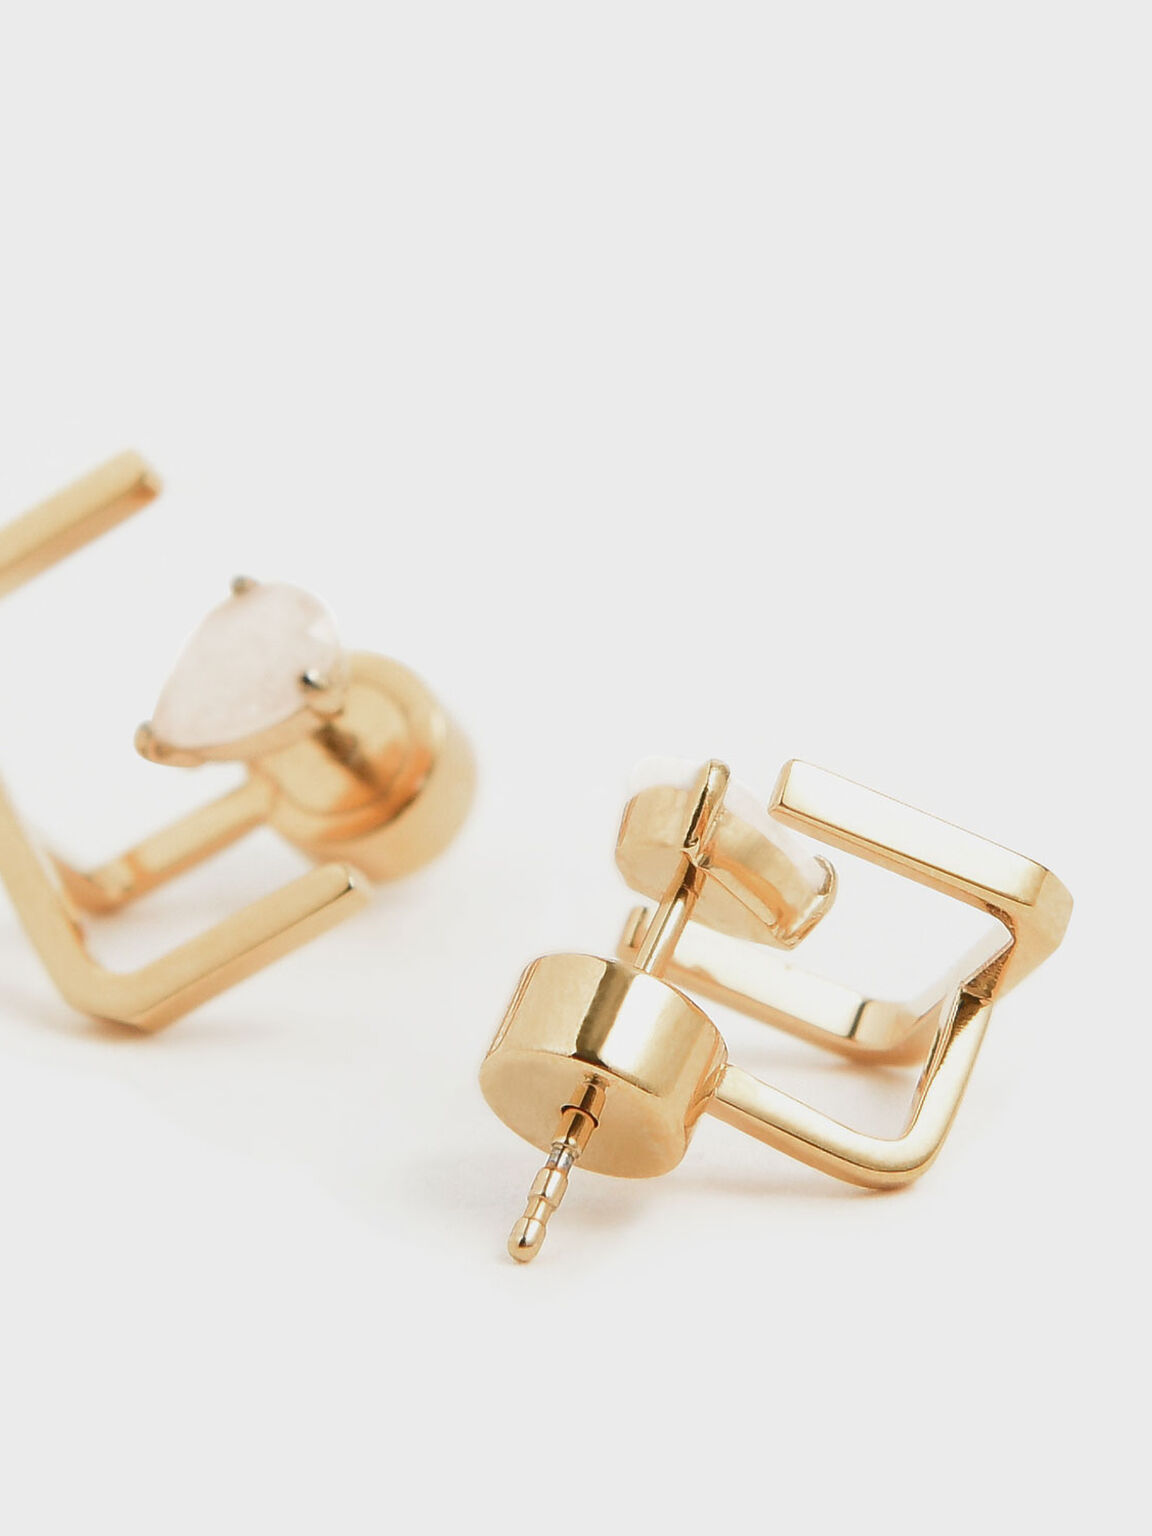 Moonstone Ear Climber Earrings, Gold, hi-res